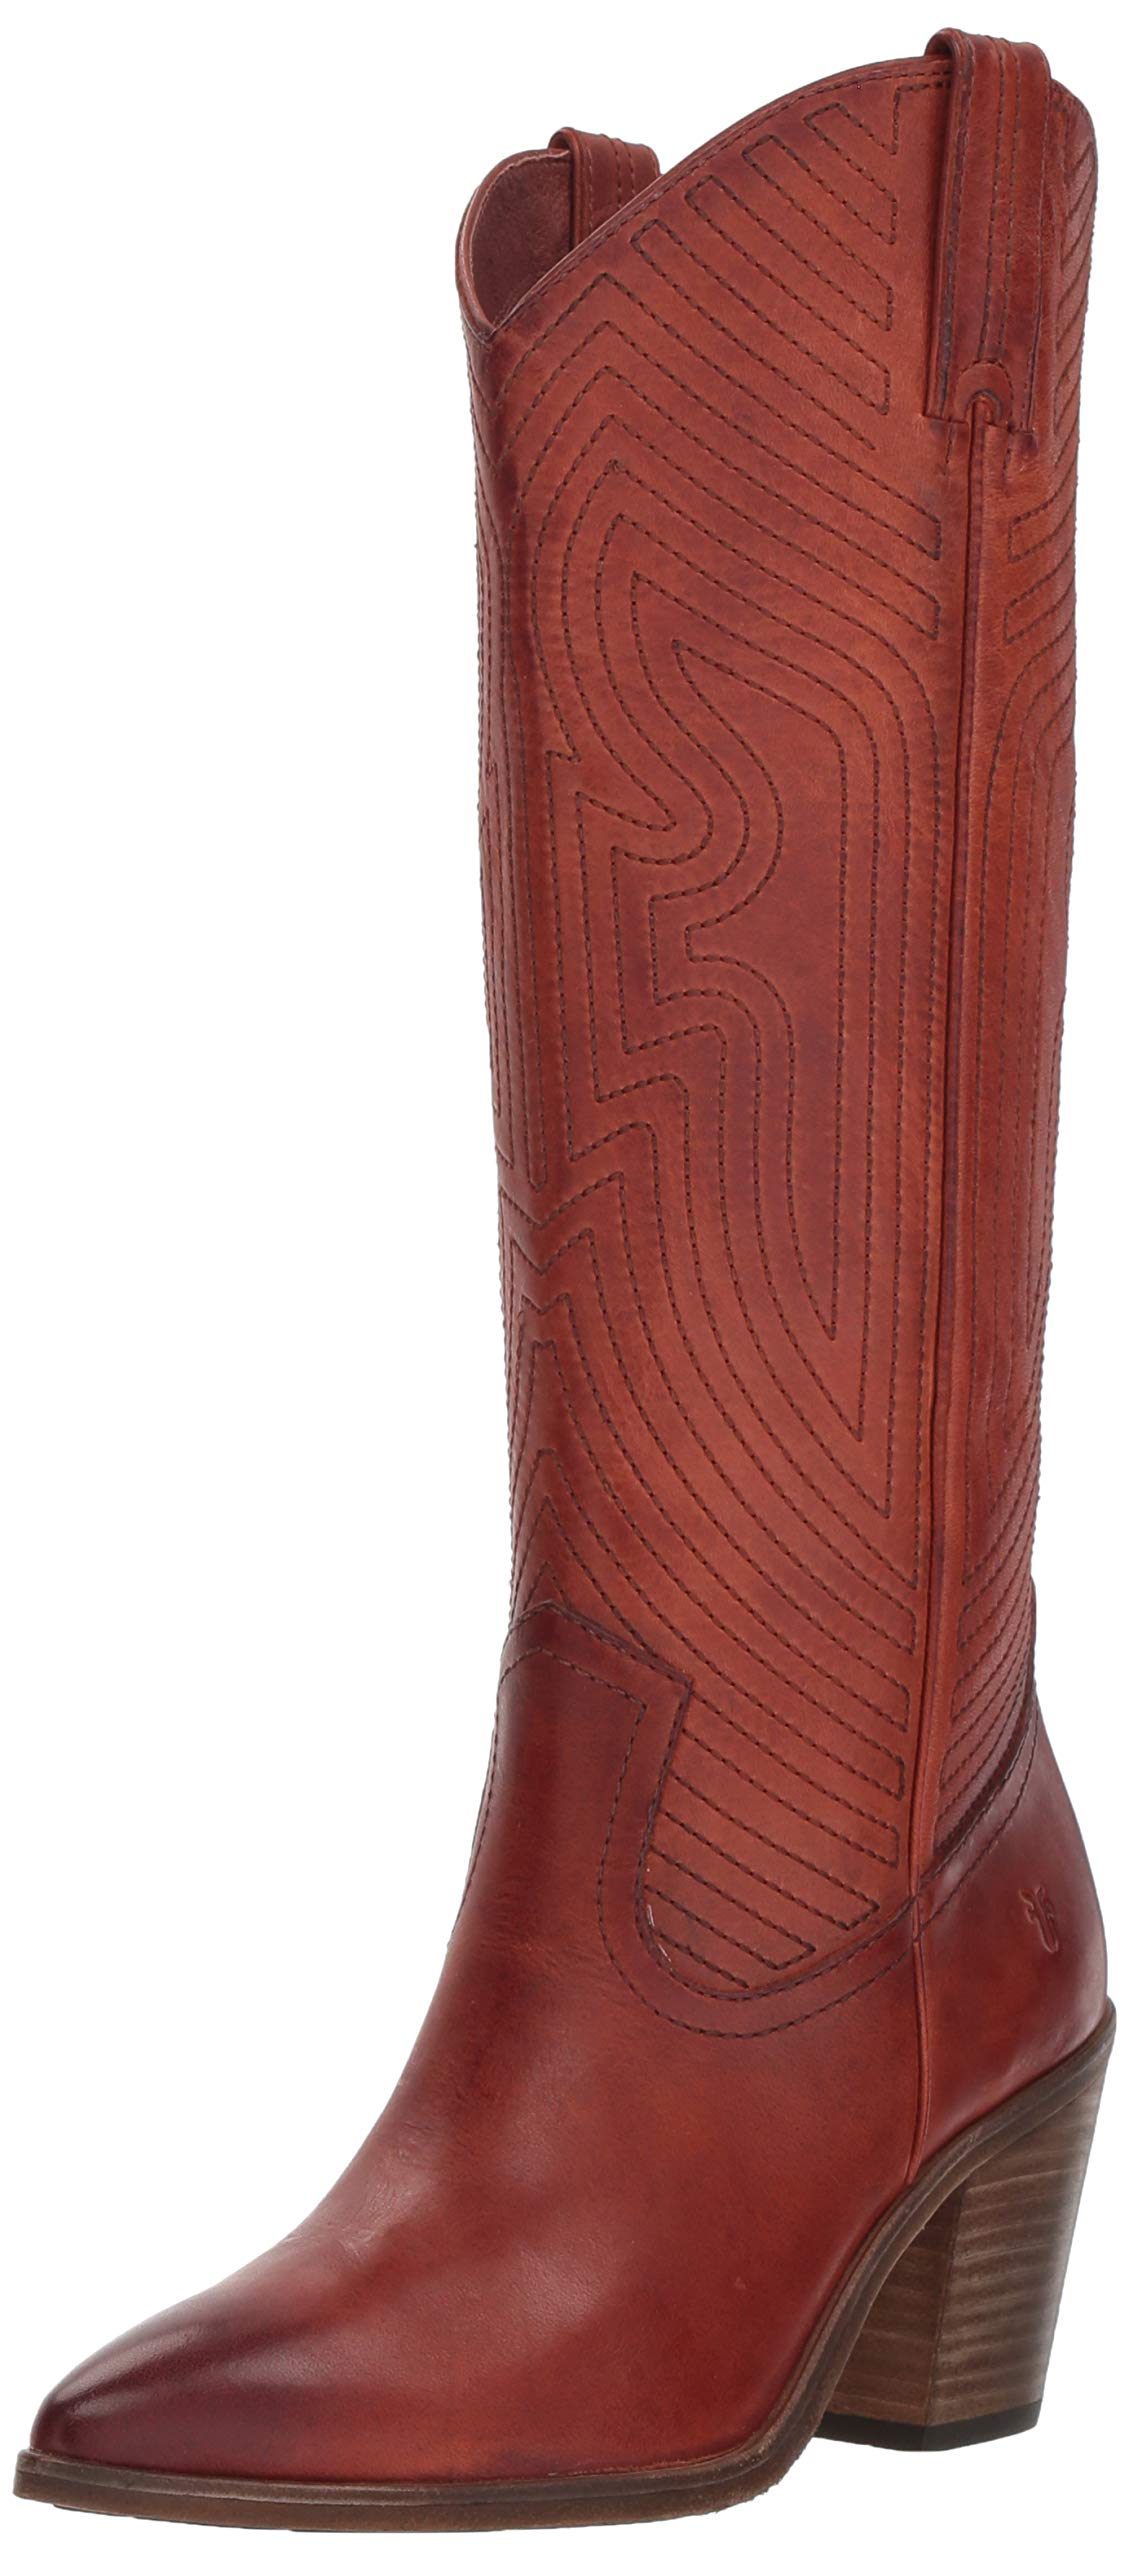 FRYE Women's Faye Stitch Pull On Western Boot, red Clay, 10 M US by FRYE